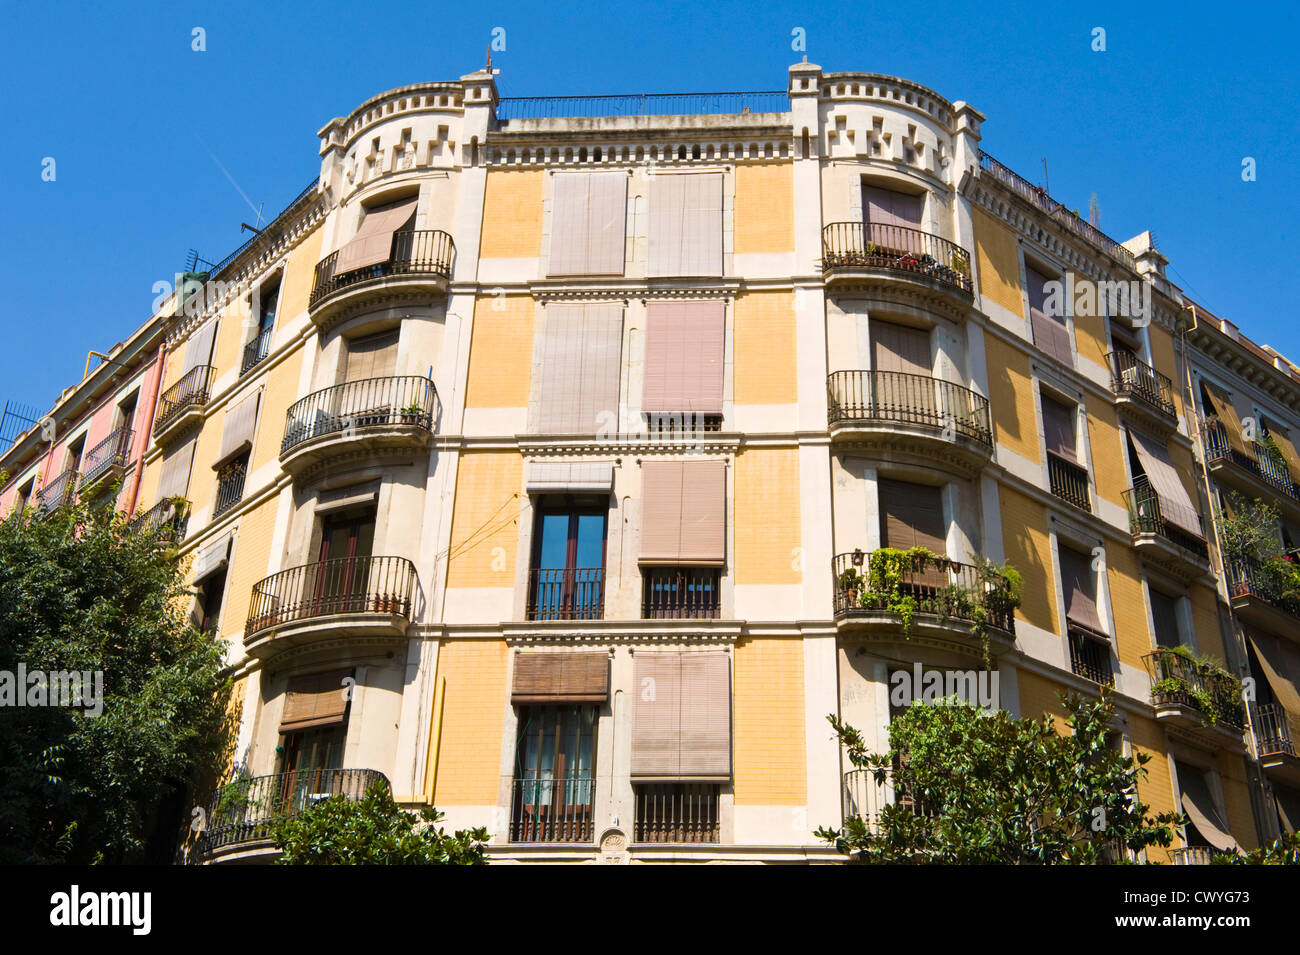 Apartments With Wrought Iron Balconies And Exterior Roller Blinds In